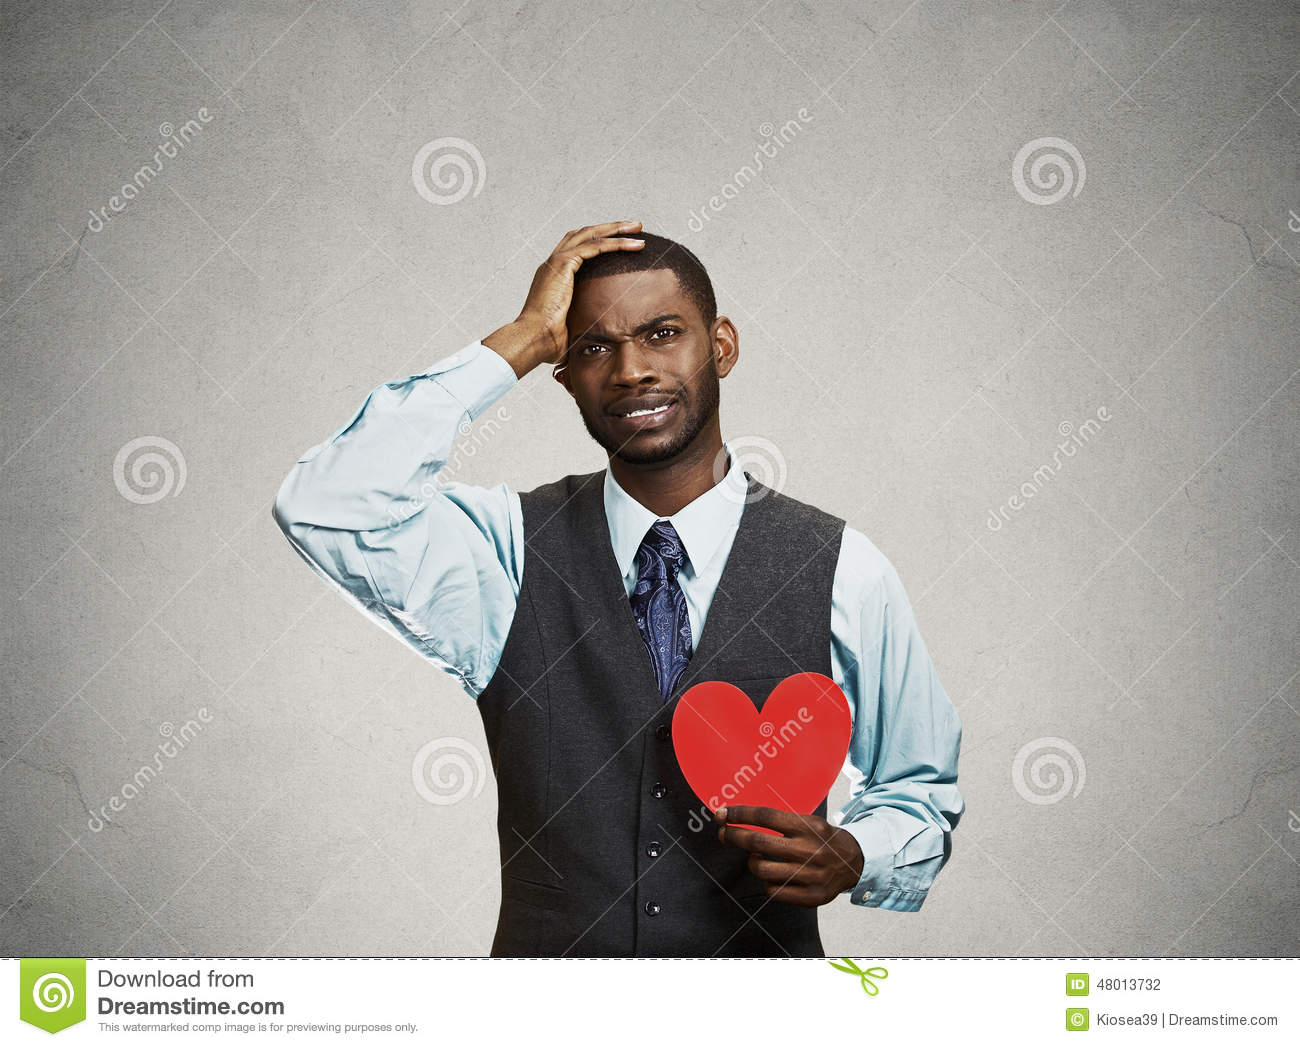 Download Sad Company Man Holding Red Heart, Crying Stock Photo - Image of betrayal, business: 48013732